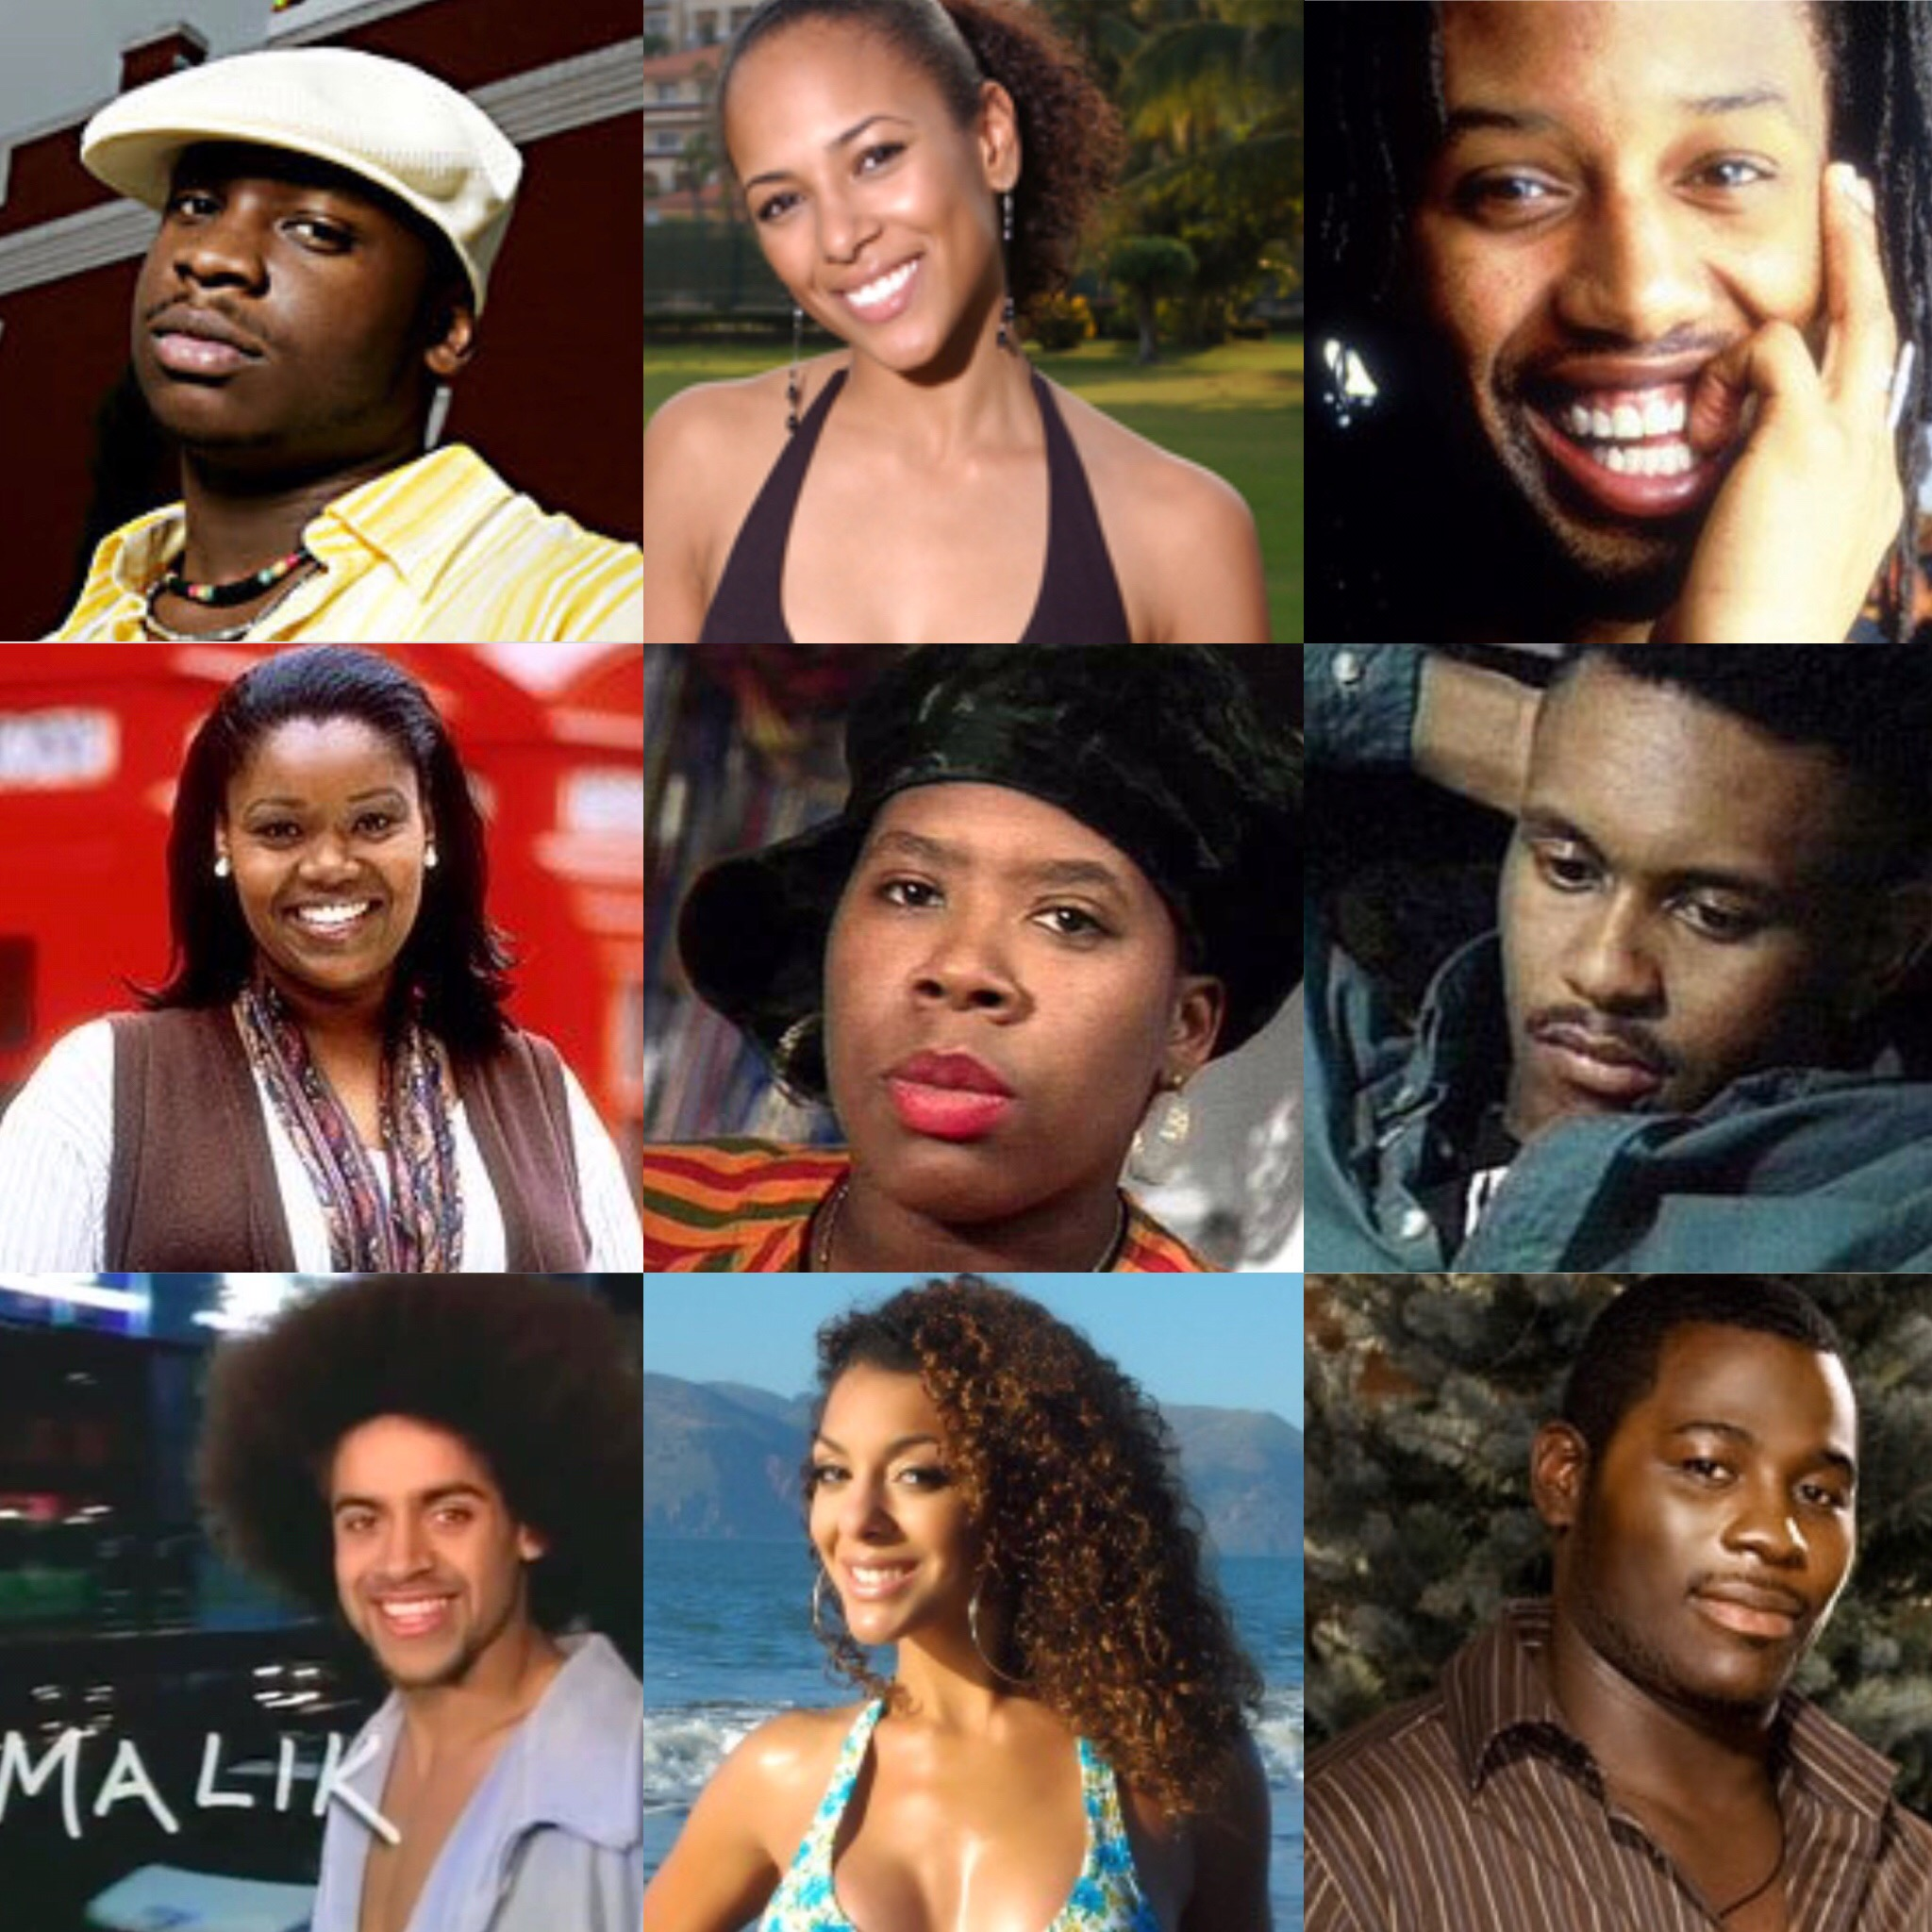 The Most Memorable Black Cast Members From The Real World High